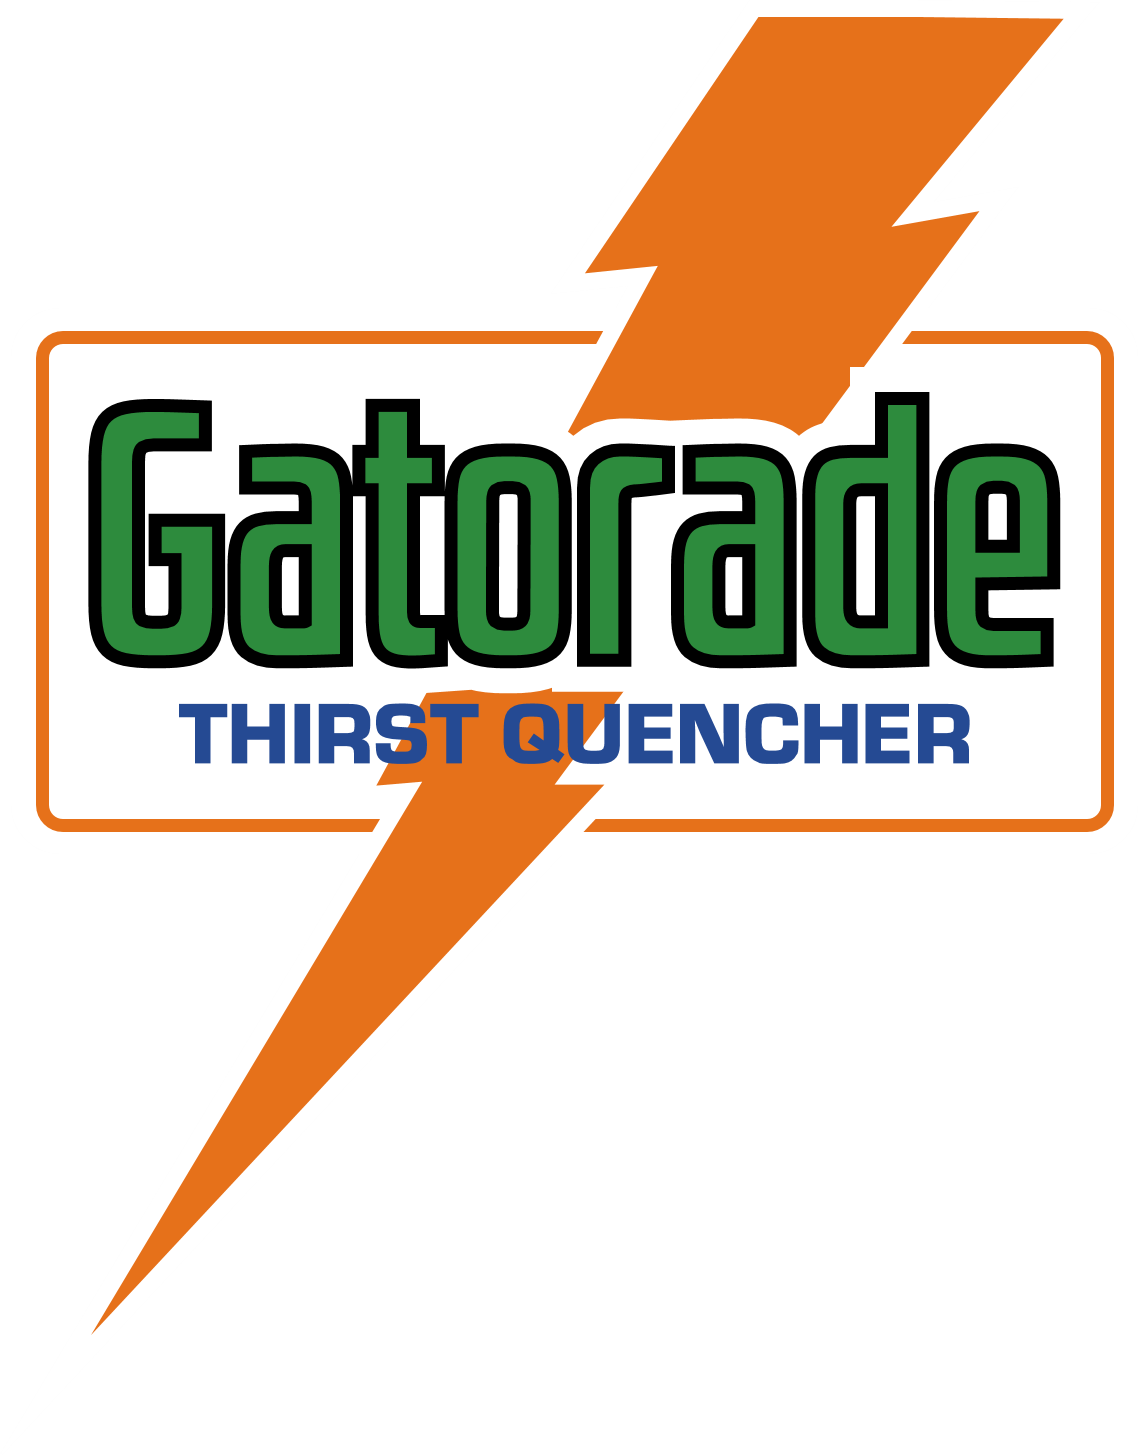 gatorade el kadsre dream logos wiki fandom powered by wikia rh dreamlogos wikia com First Gatorade Logo Gatorade Logo Transparent